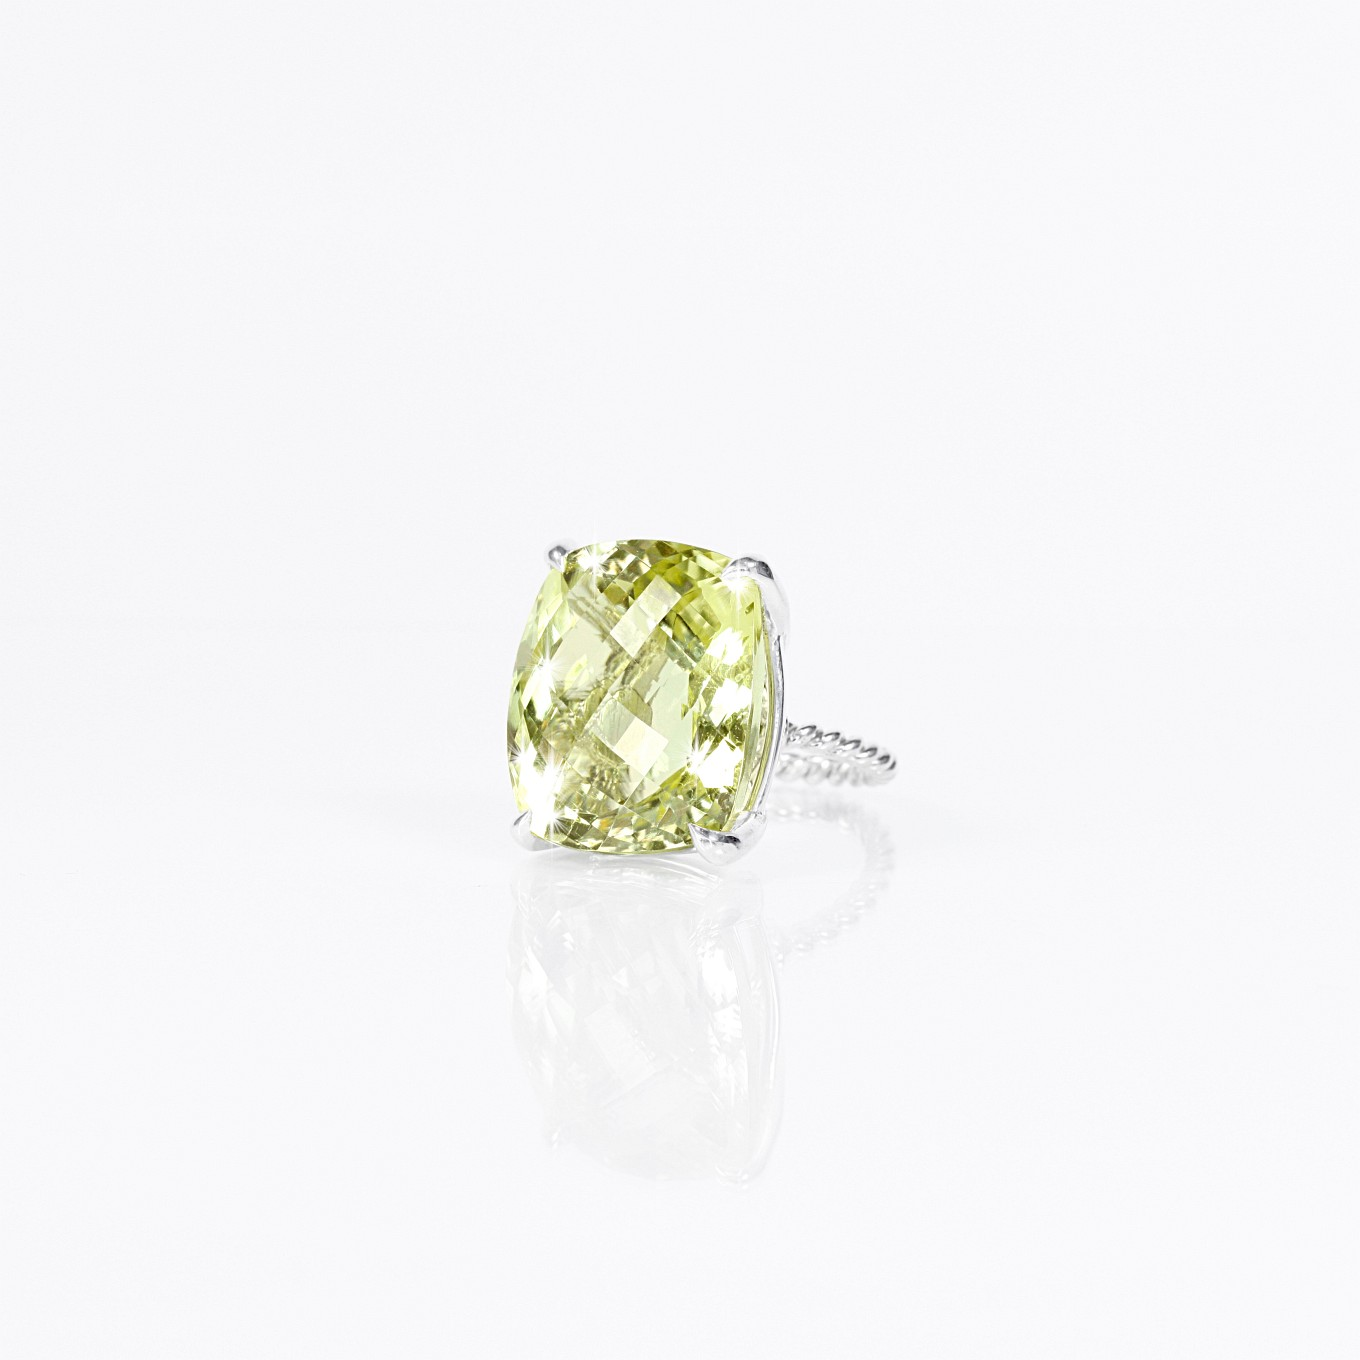 GREEN AMETHYST BRAID RING IN STERLING SILVER